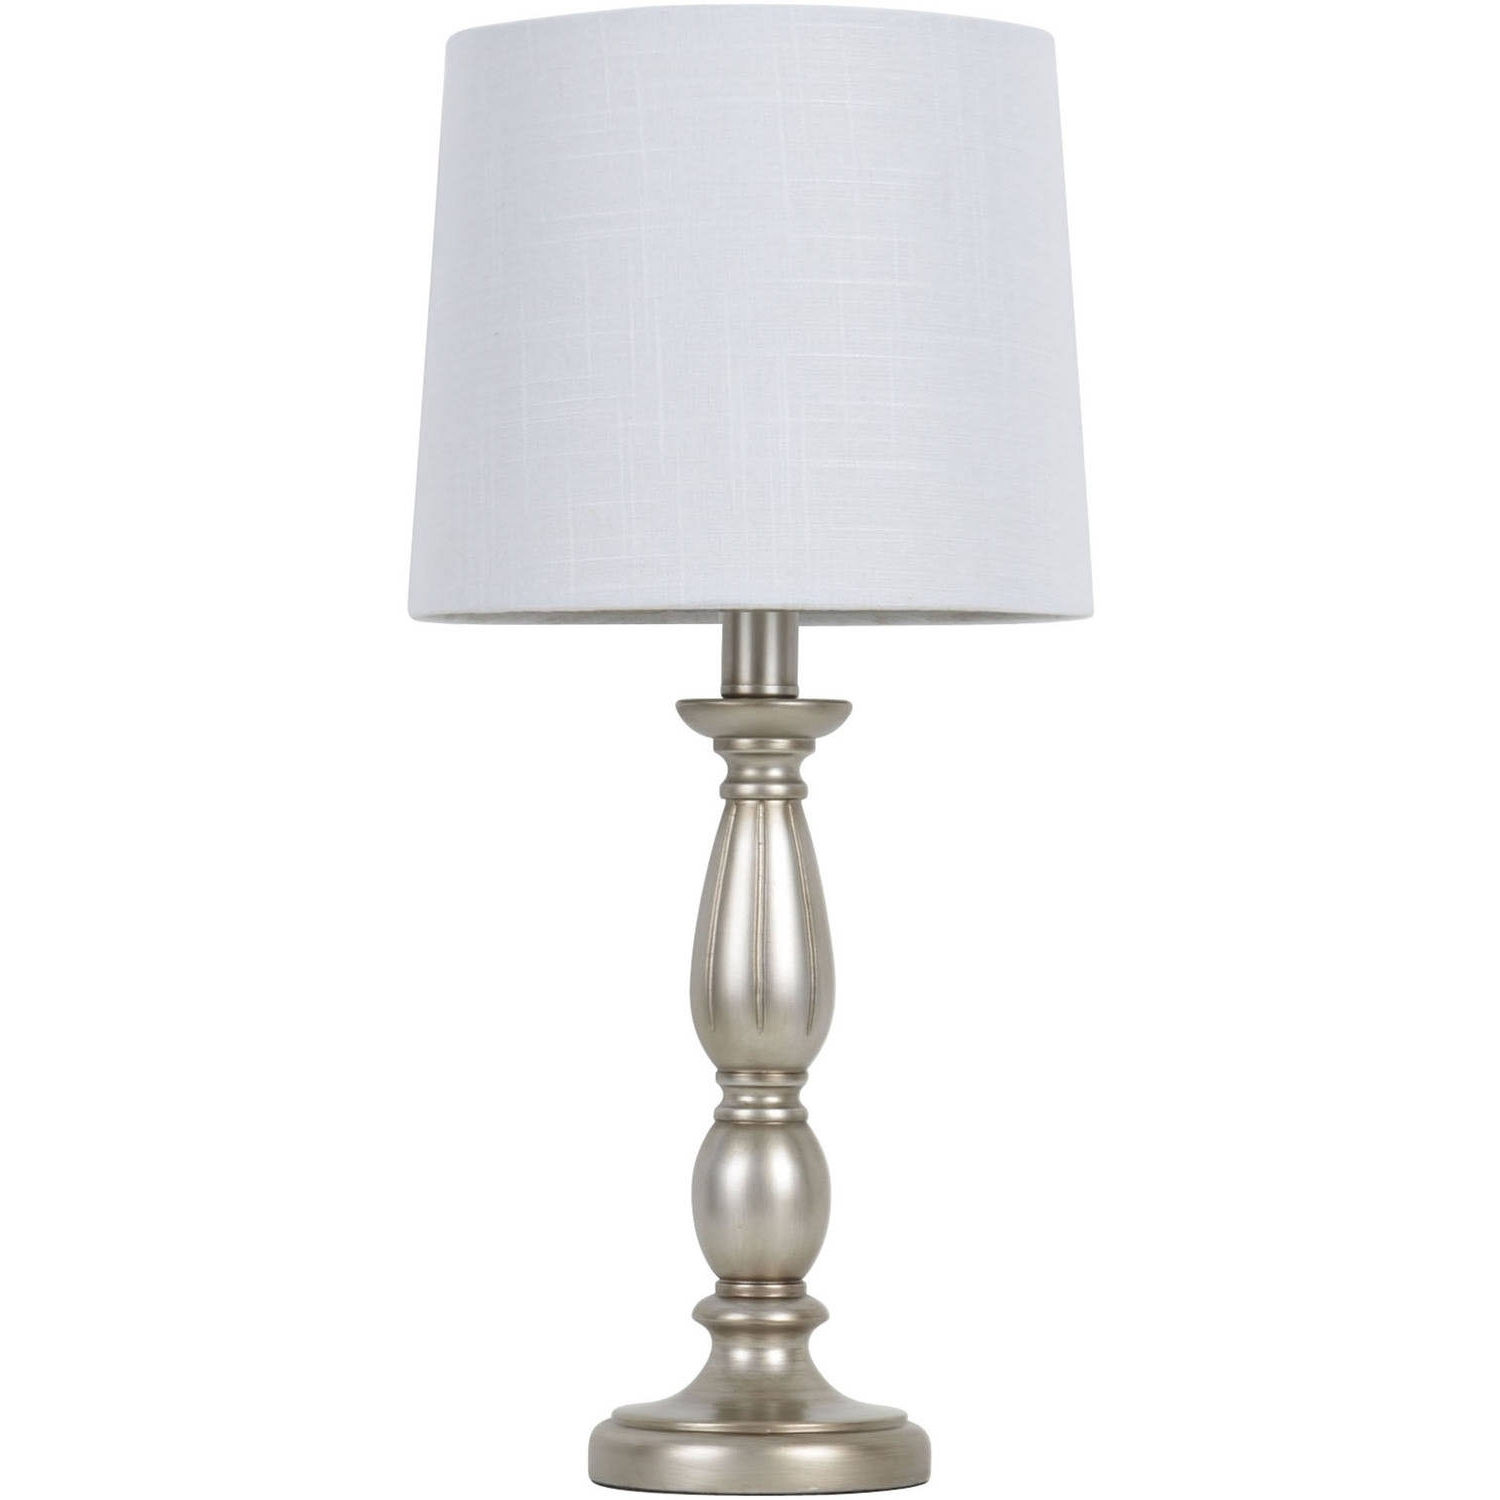 walmart living room tables renovations pictures view photos of table lamps showing 18 20 regarding latest top 65 terrific vintage lamp shades